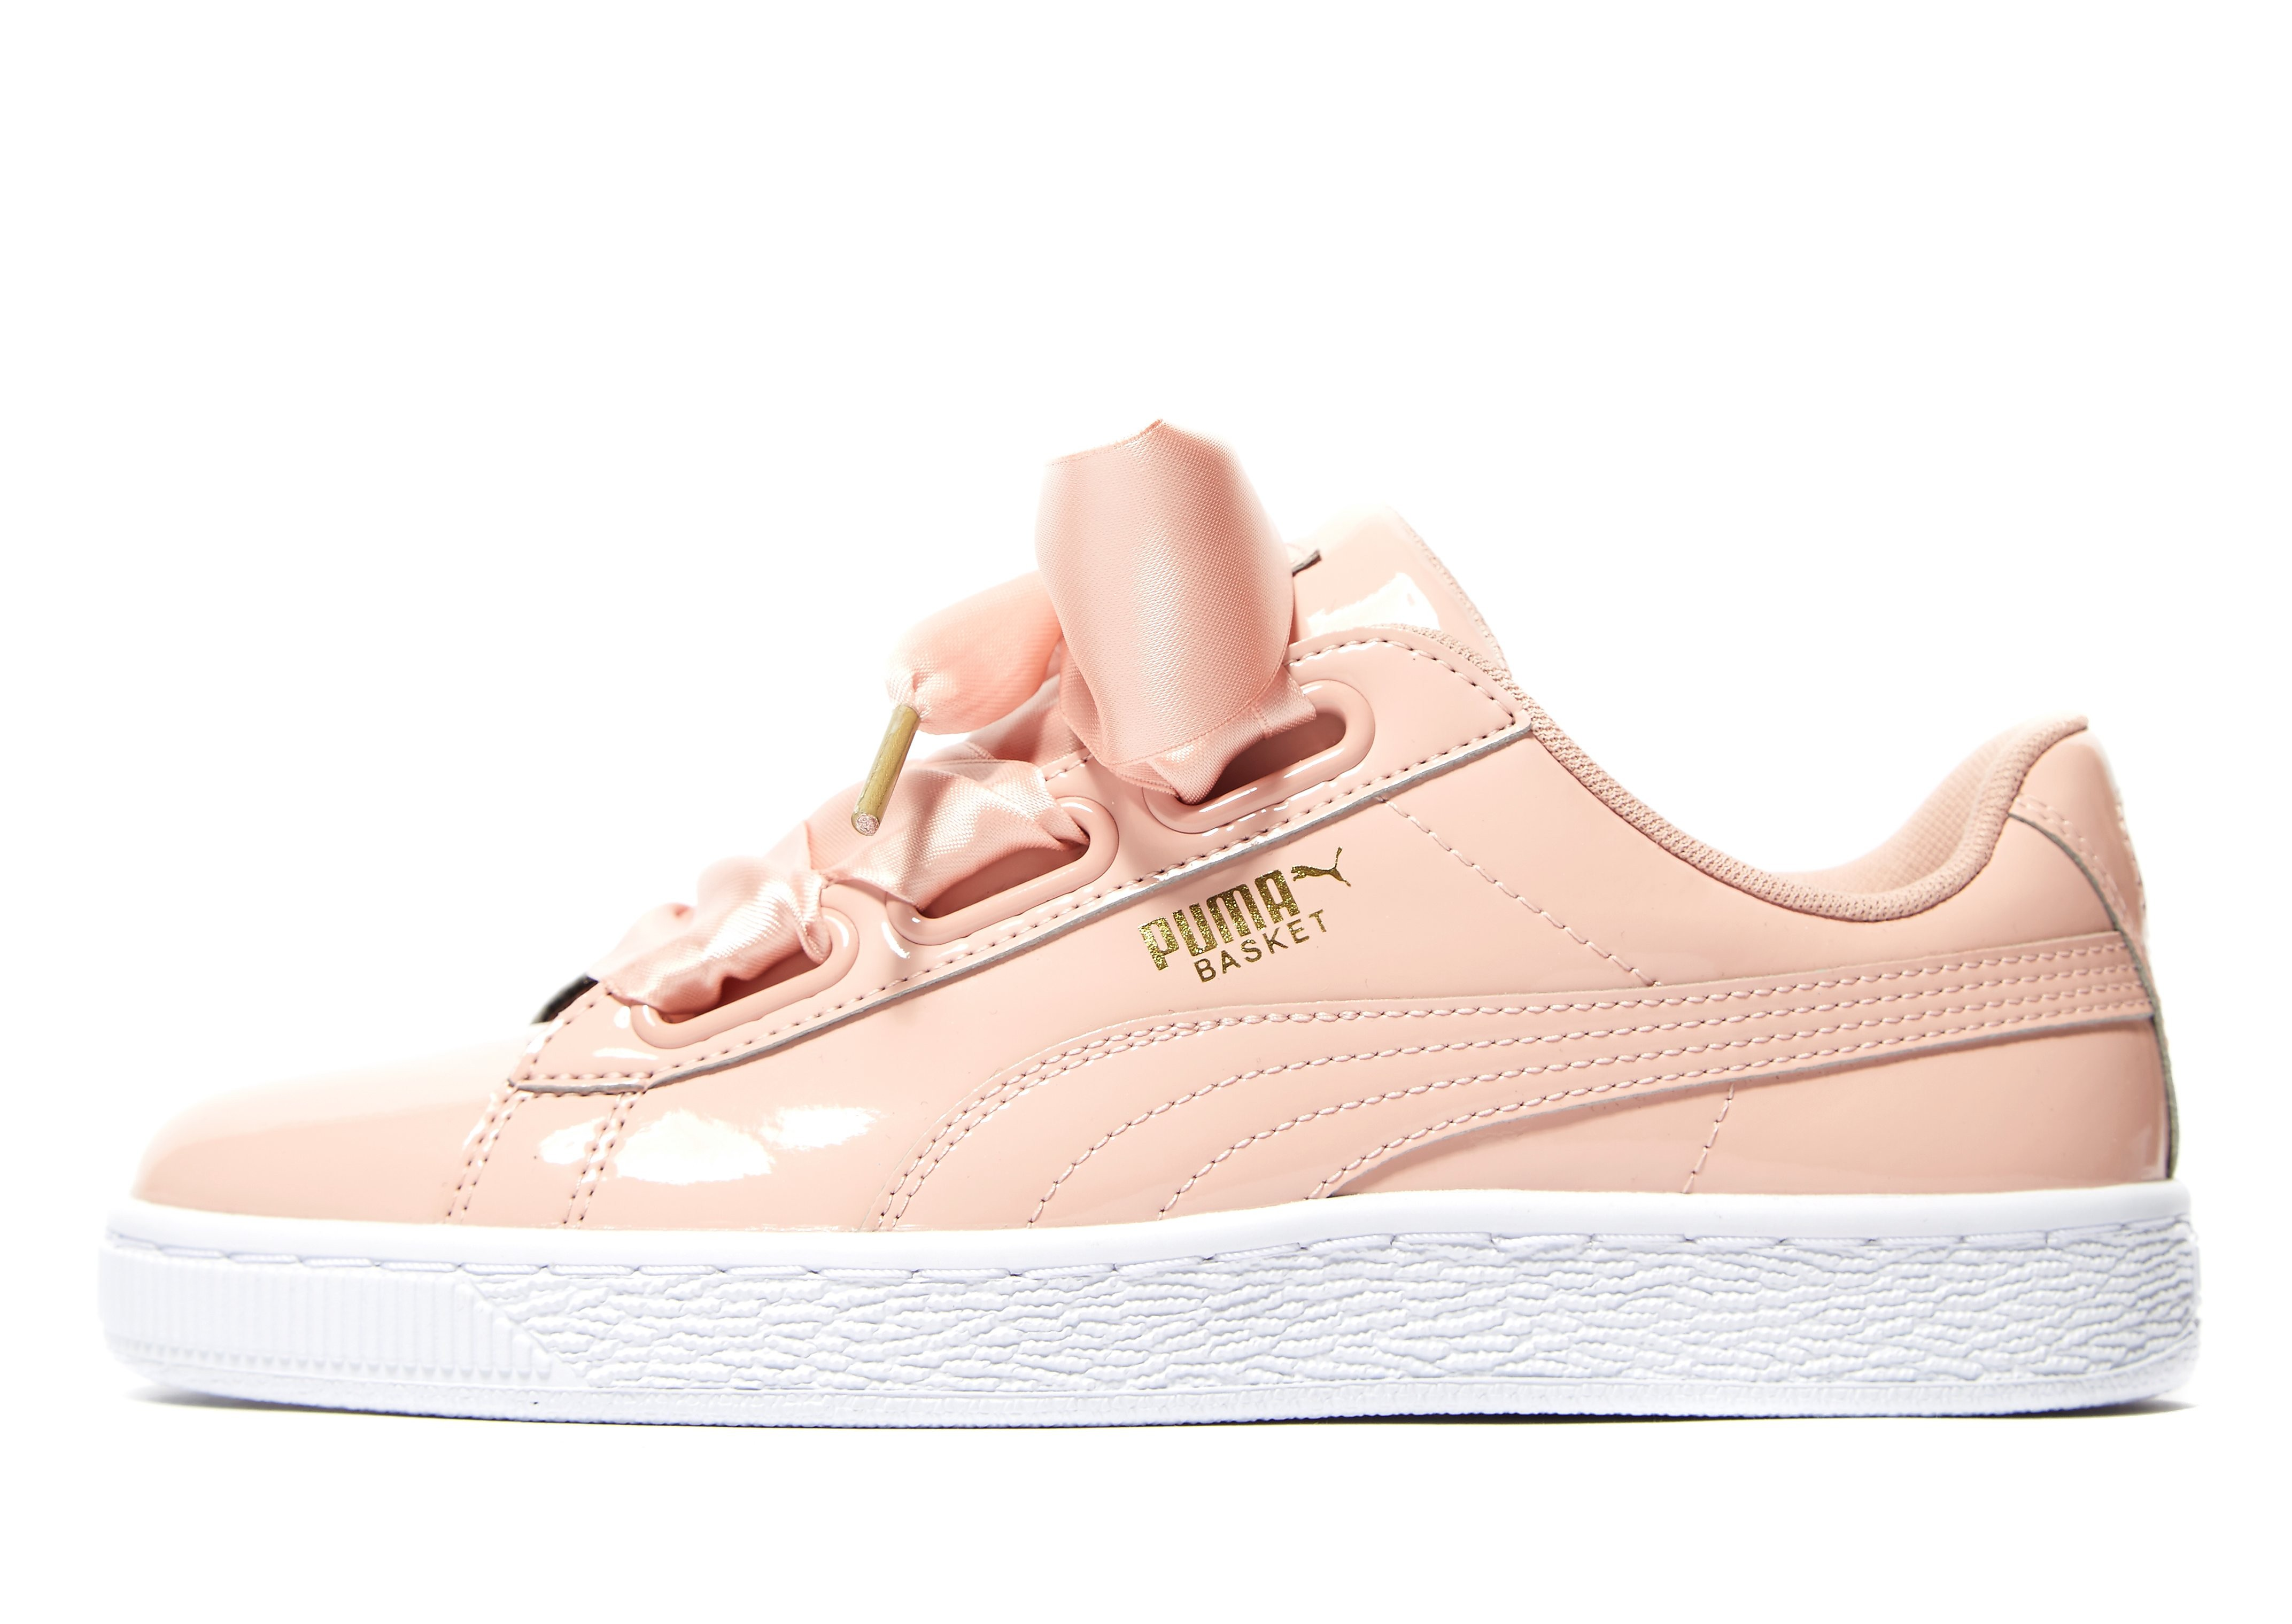 PUMA Basket Heart Patent Women's